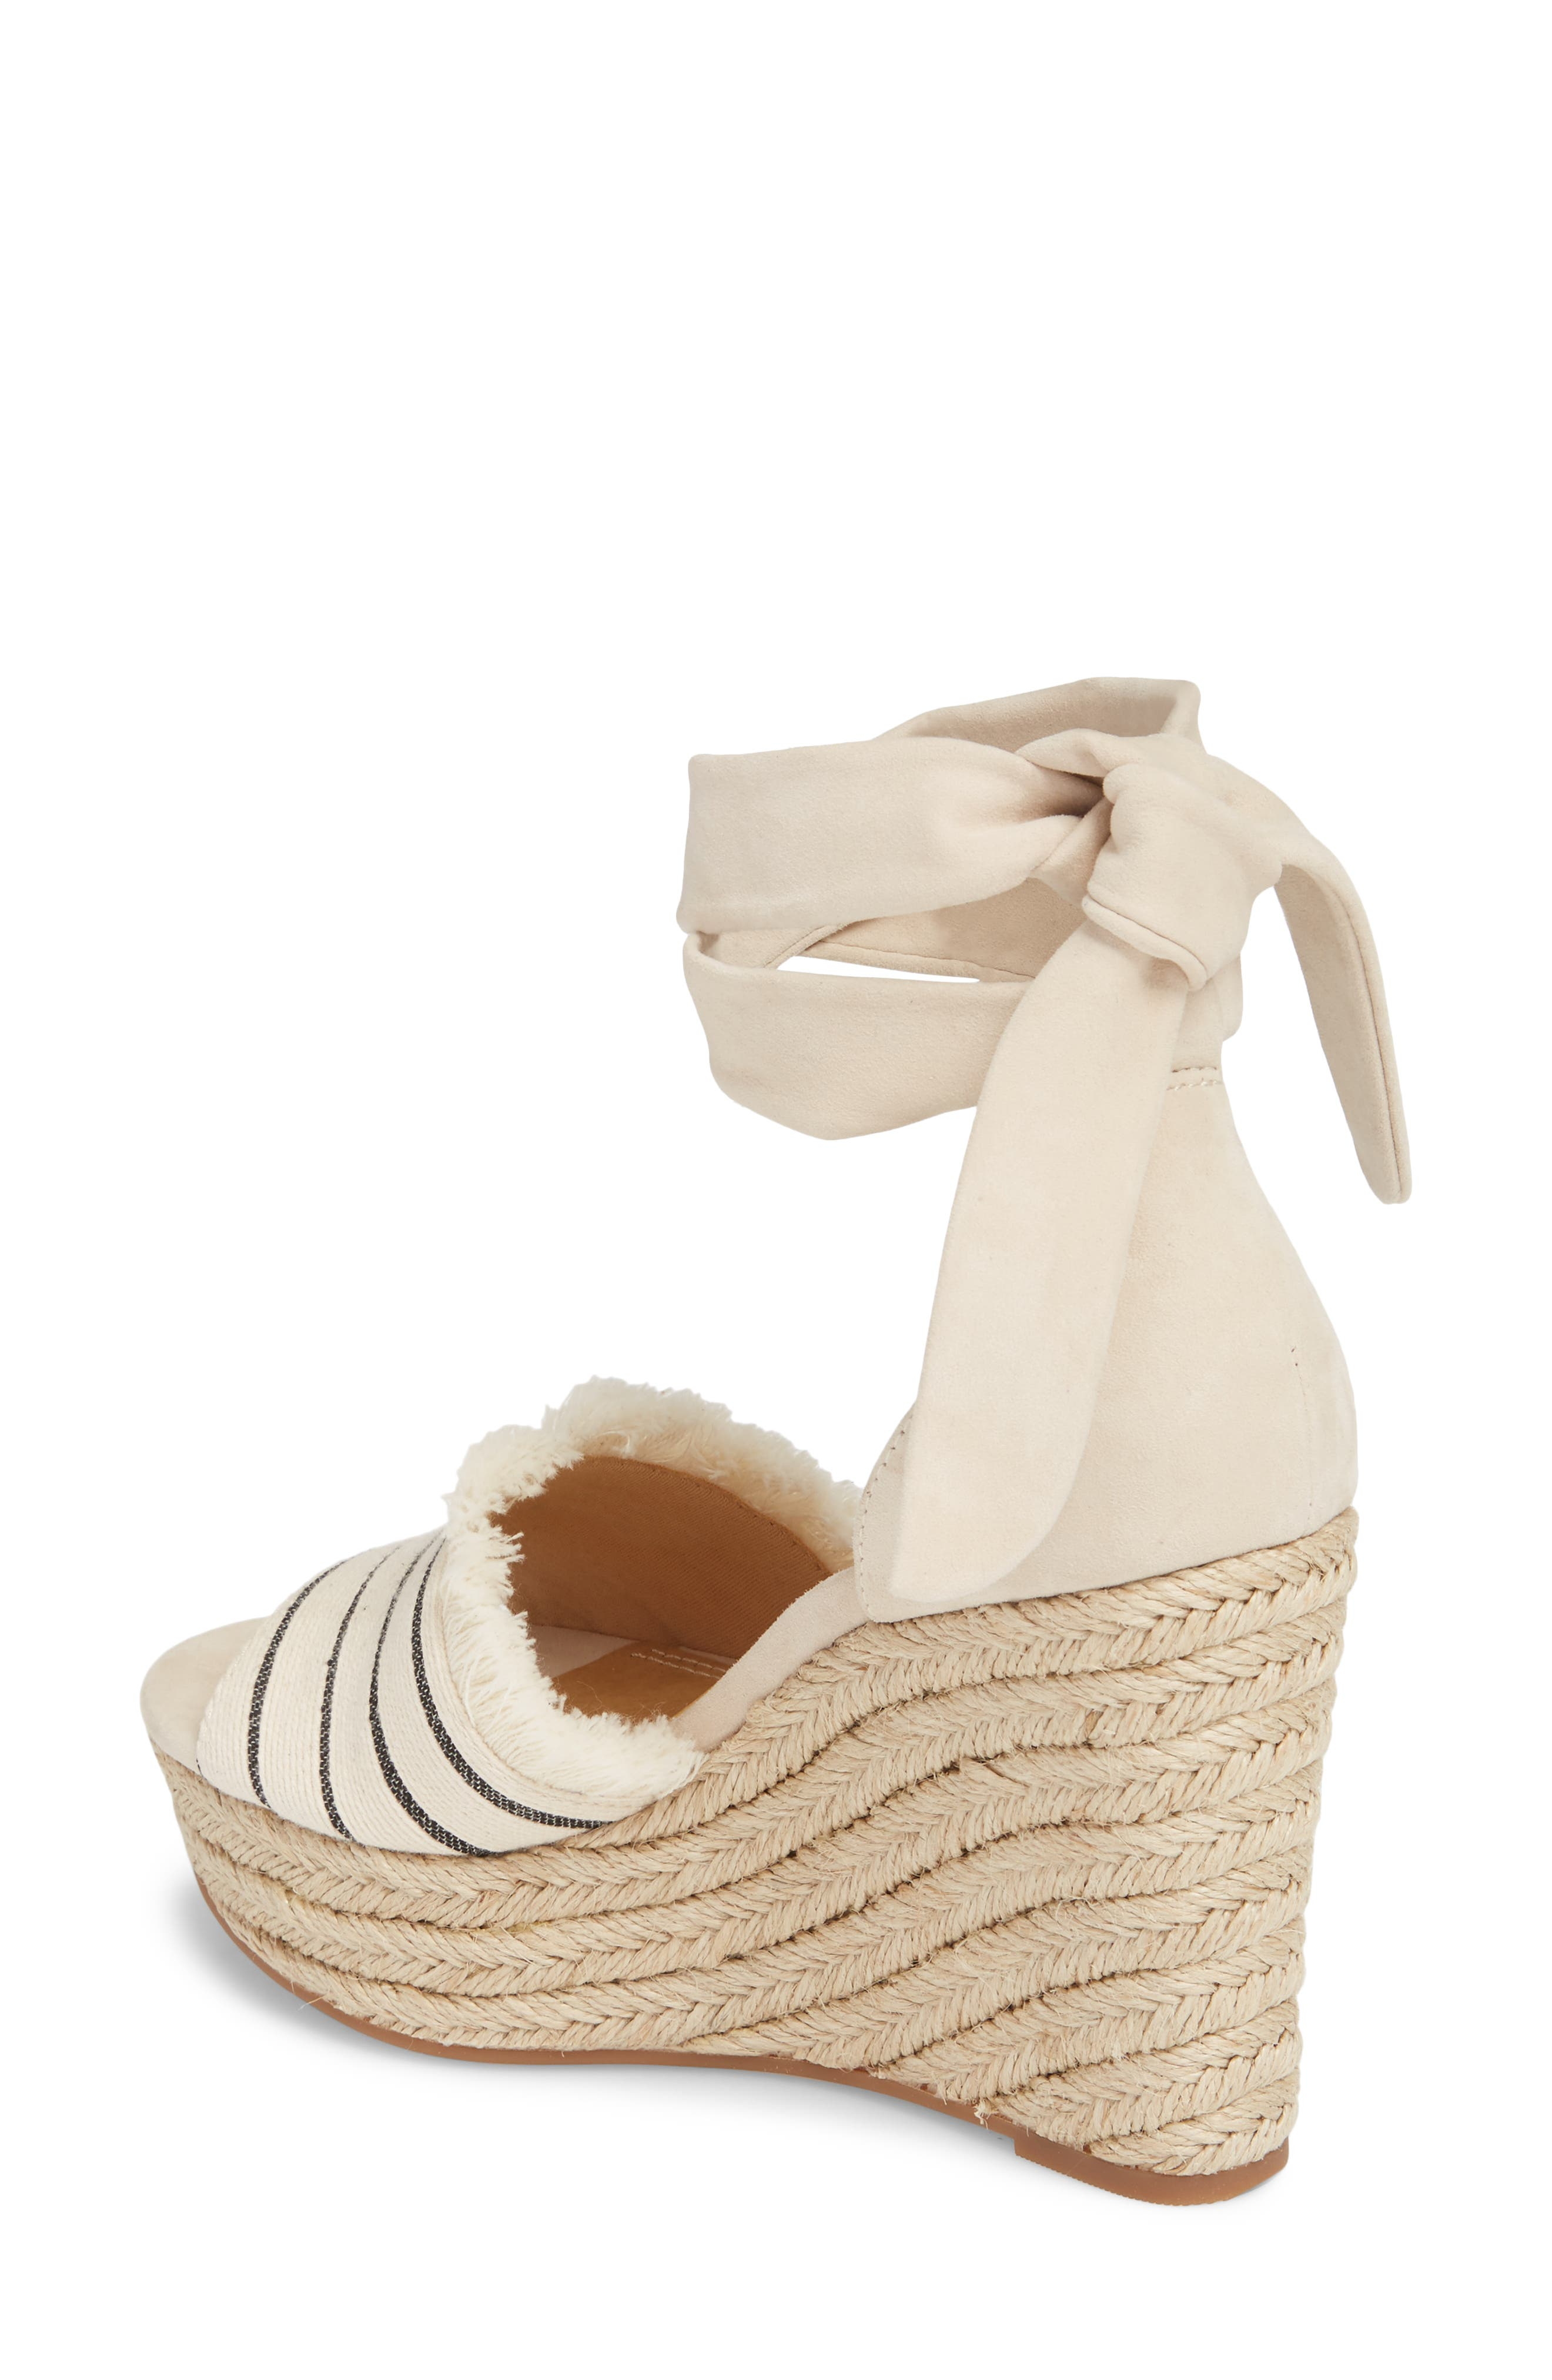 Barke Fringed Platform Wedge Sandal,                             Alternate thumbnail 2, color,                             100